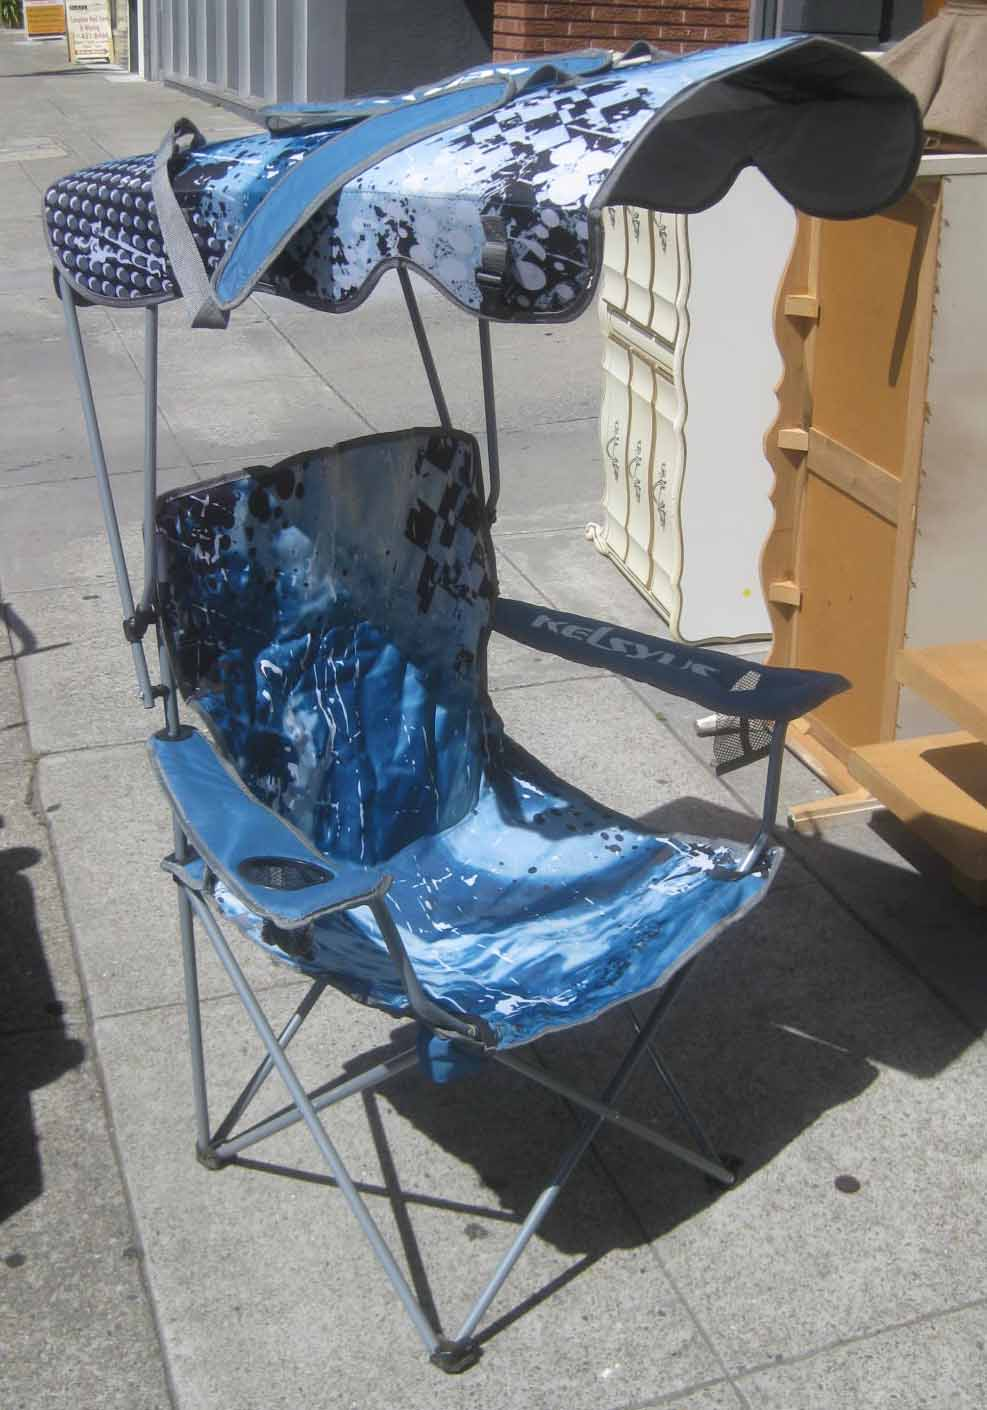 UHURU FURNITURE & COLLECTIBLES SOLD Pair of Fold Up Chairs with Canopy